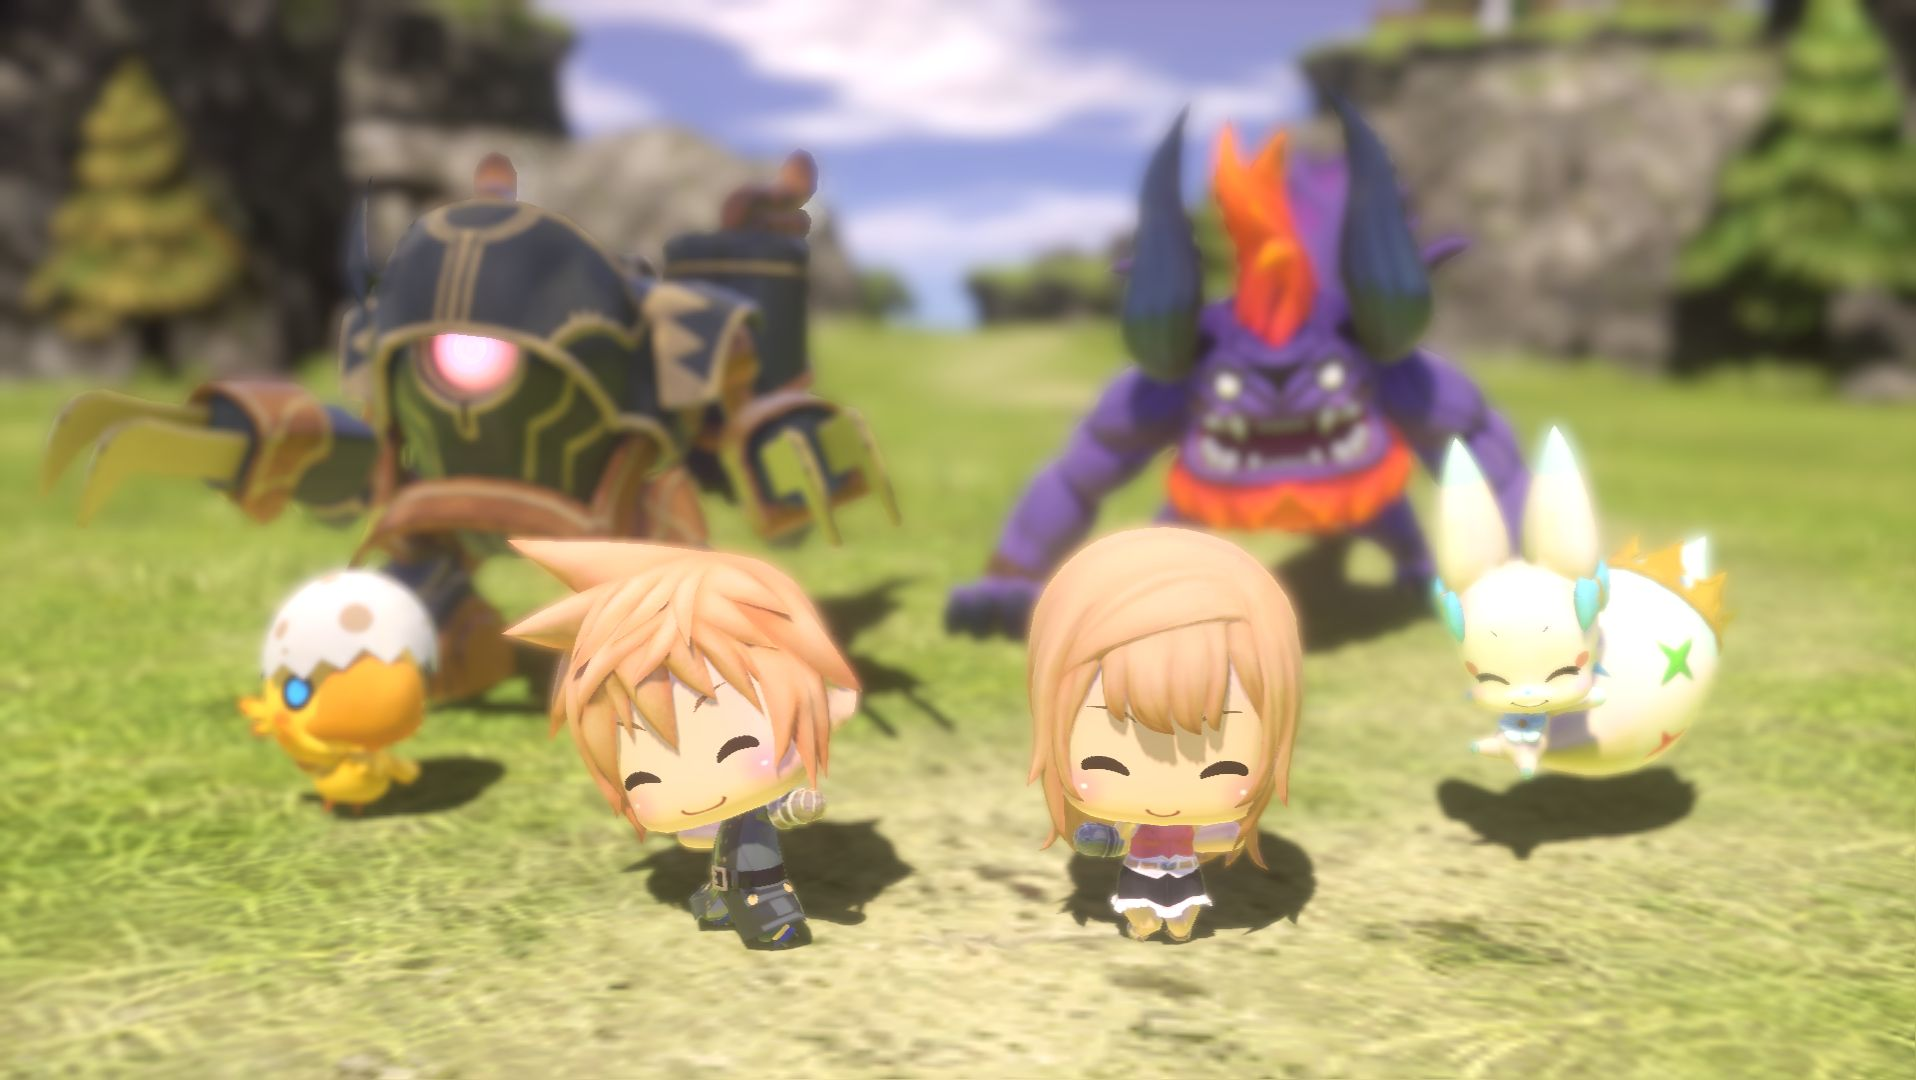 Chibi RPG World of Final Fantasy coming worldwide on October 25, new trailer released